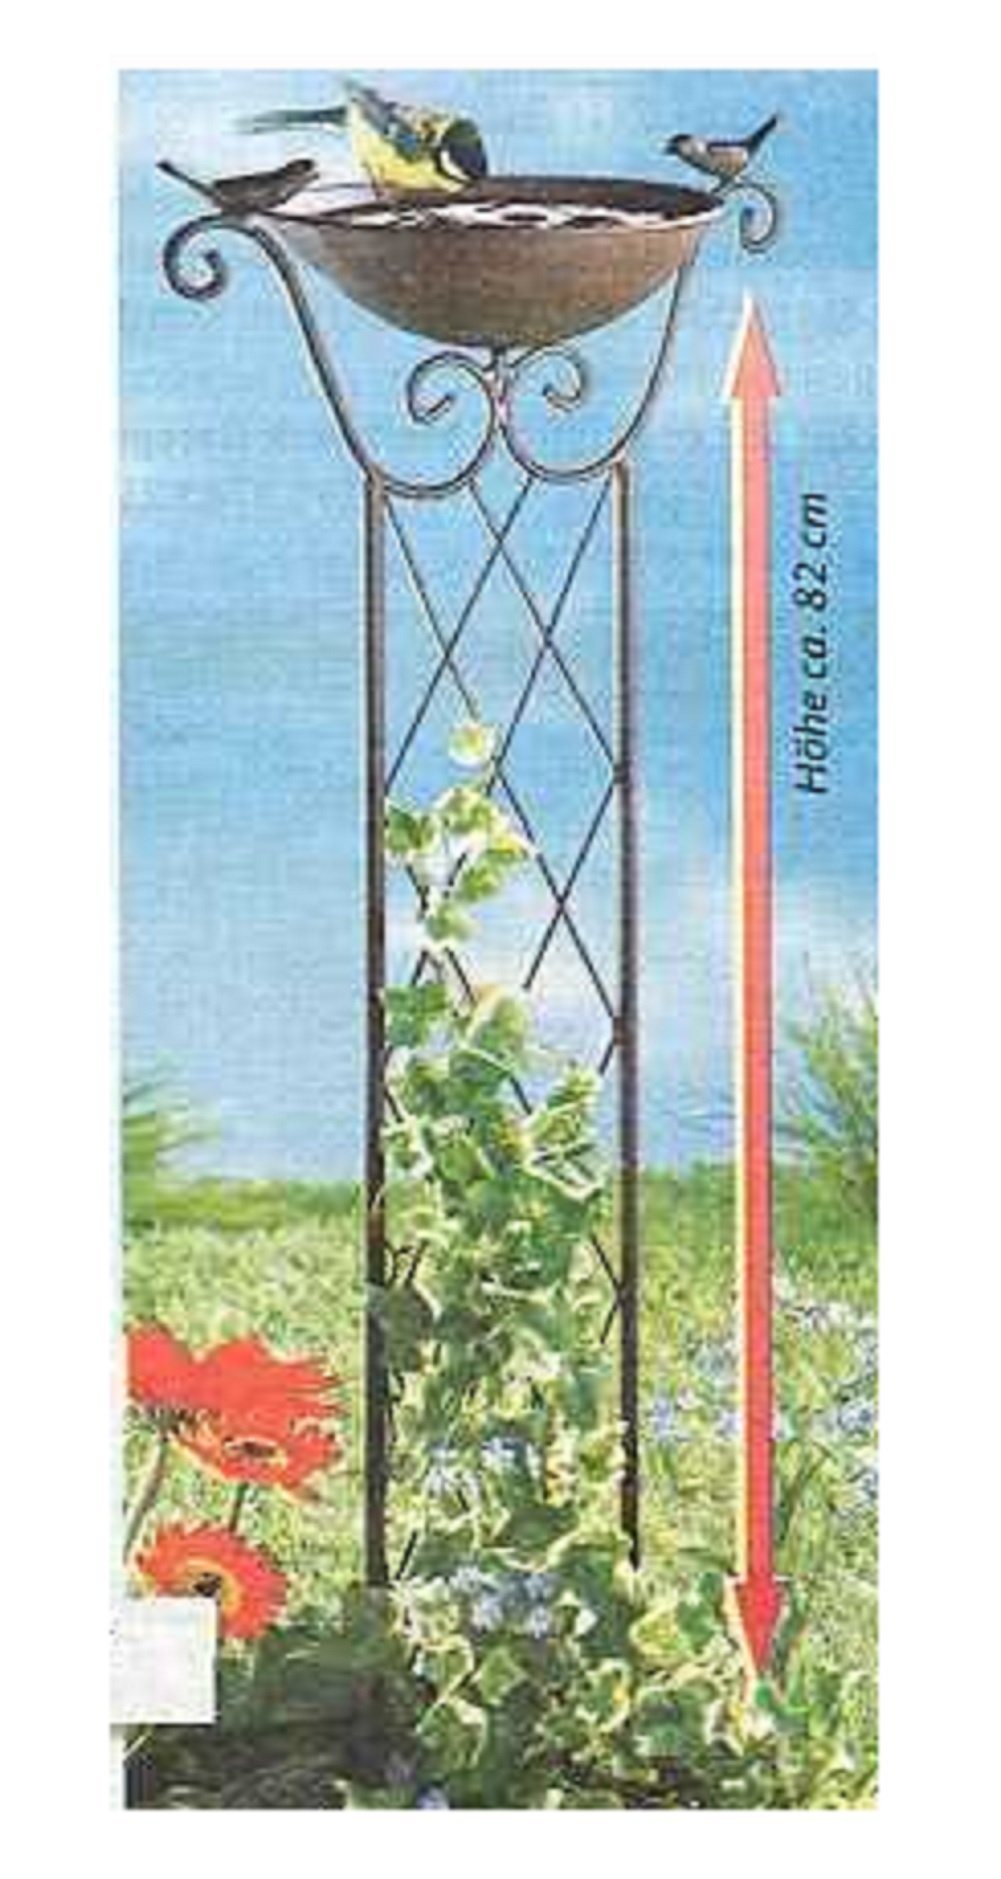 Trenton Gifts Bird Bath And Trellis | Great for Gardens and Yards | By